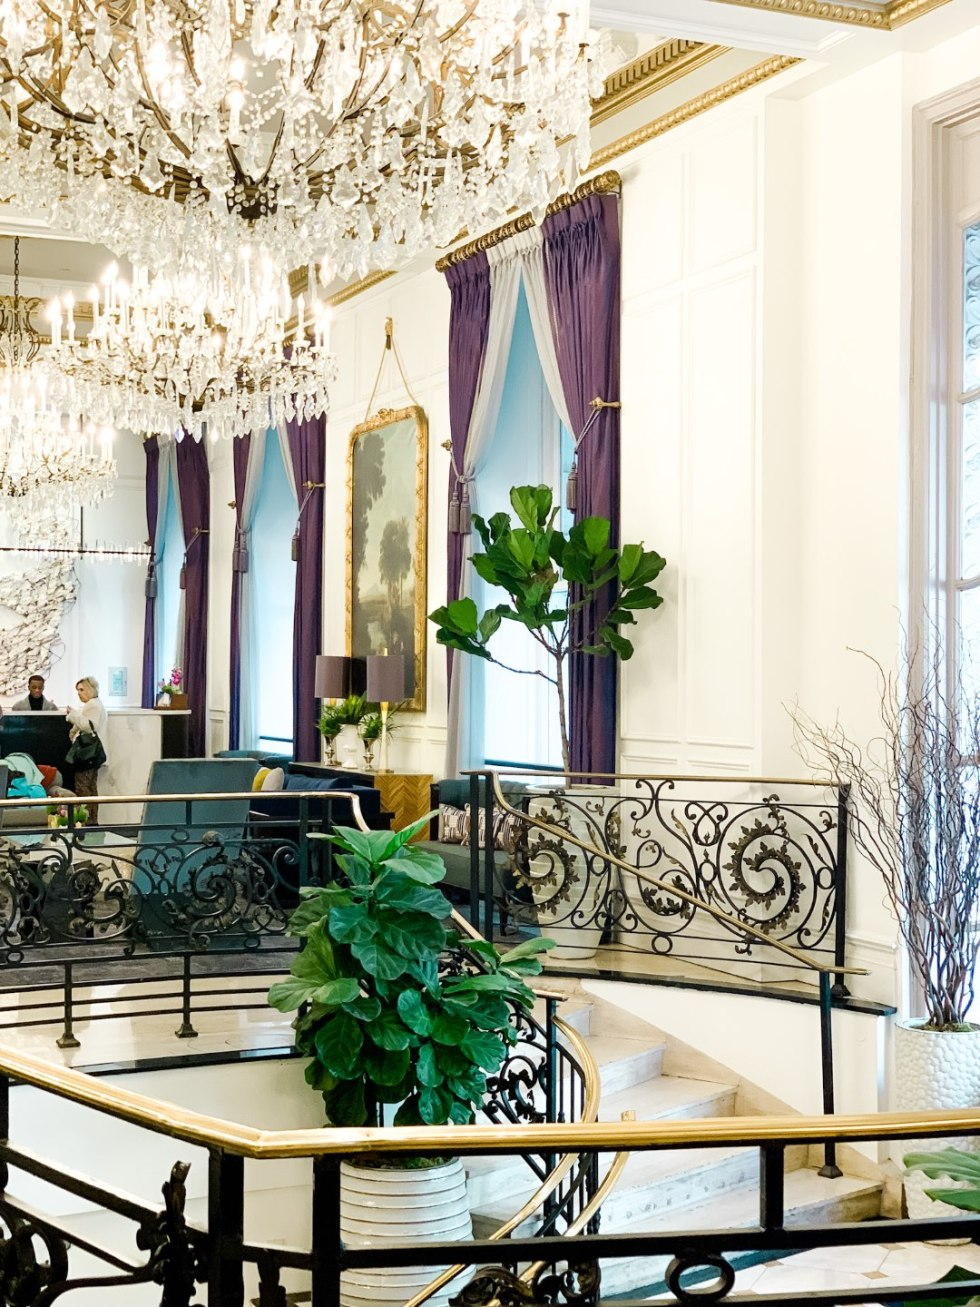 A Girls Trip to New Orleans: All the Info you Need to Prepare! - I'm Fixin' To - @mbg0112 | Girls Trip to New Orleans by popular US travel blog, I'm Fixin To: image of Le Pavillon.